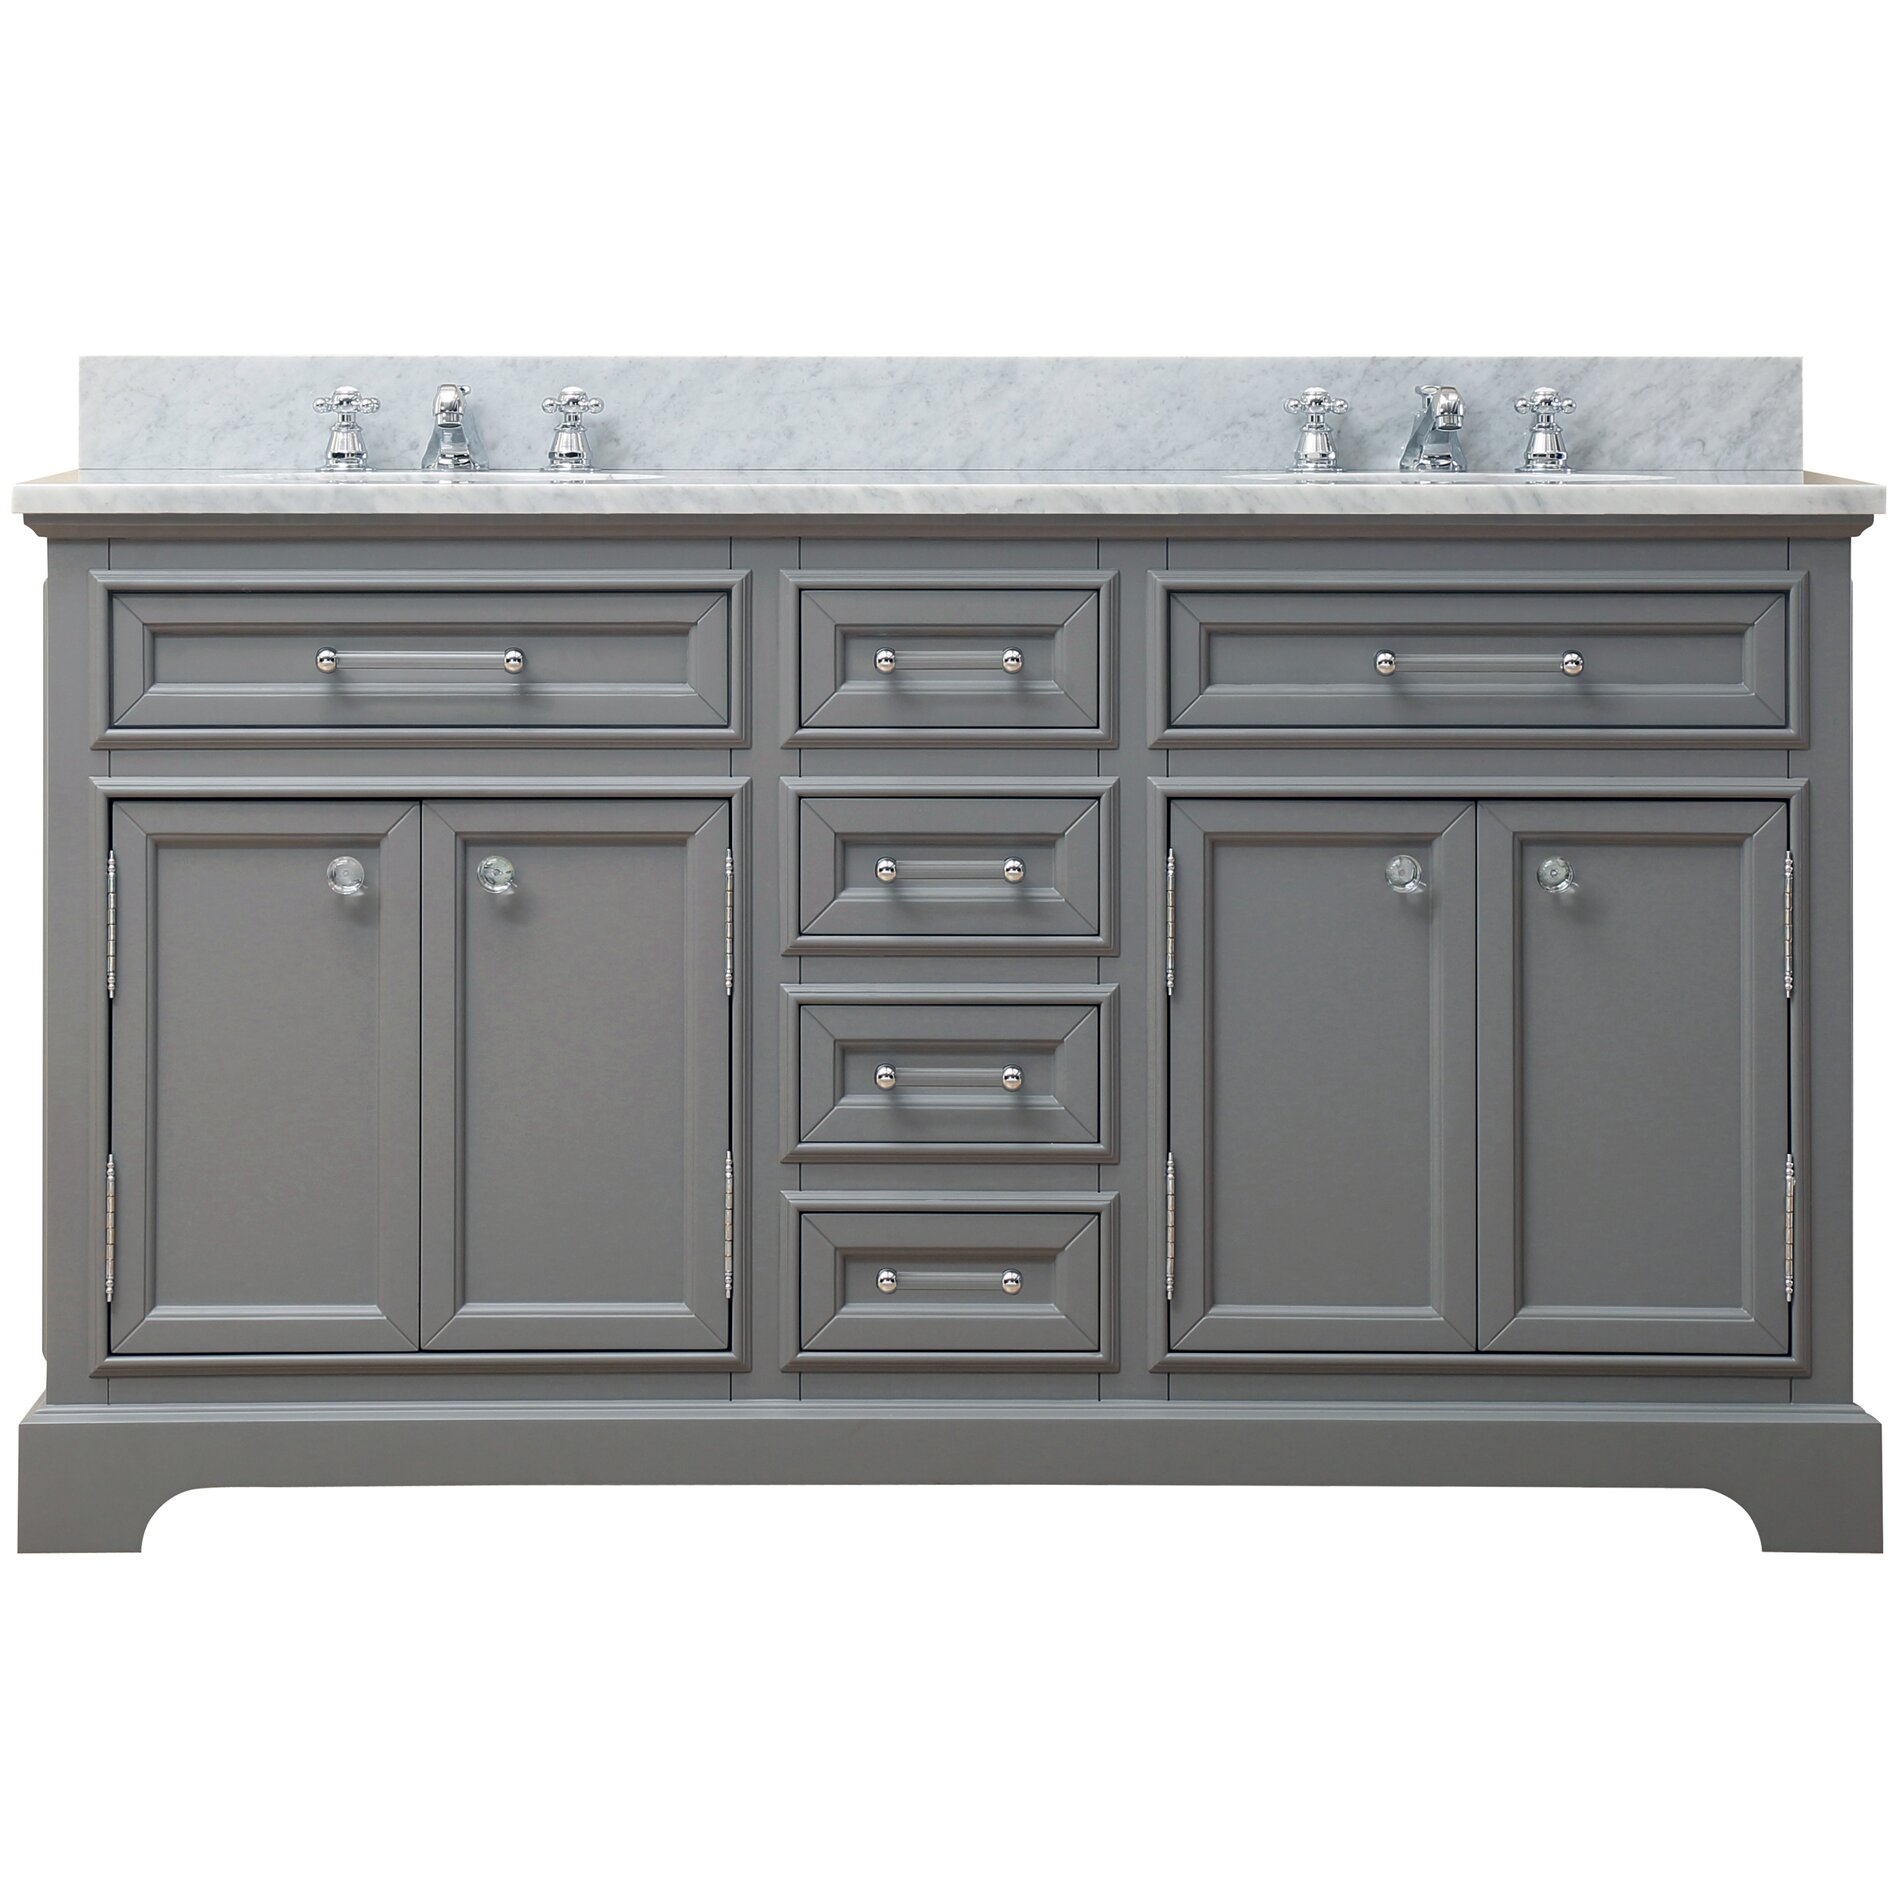 Darby Home Co Colchester 60 Double Sink Bathroom Vanity Set Grey Amp